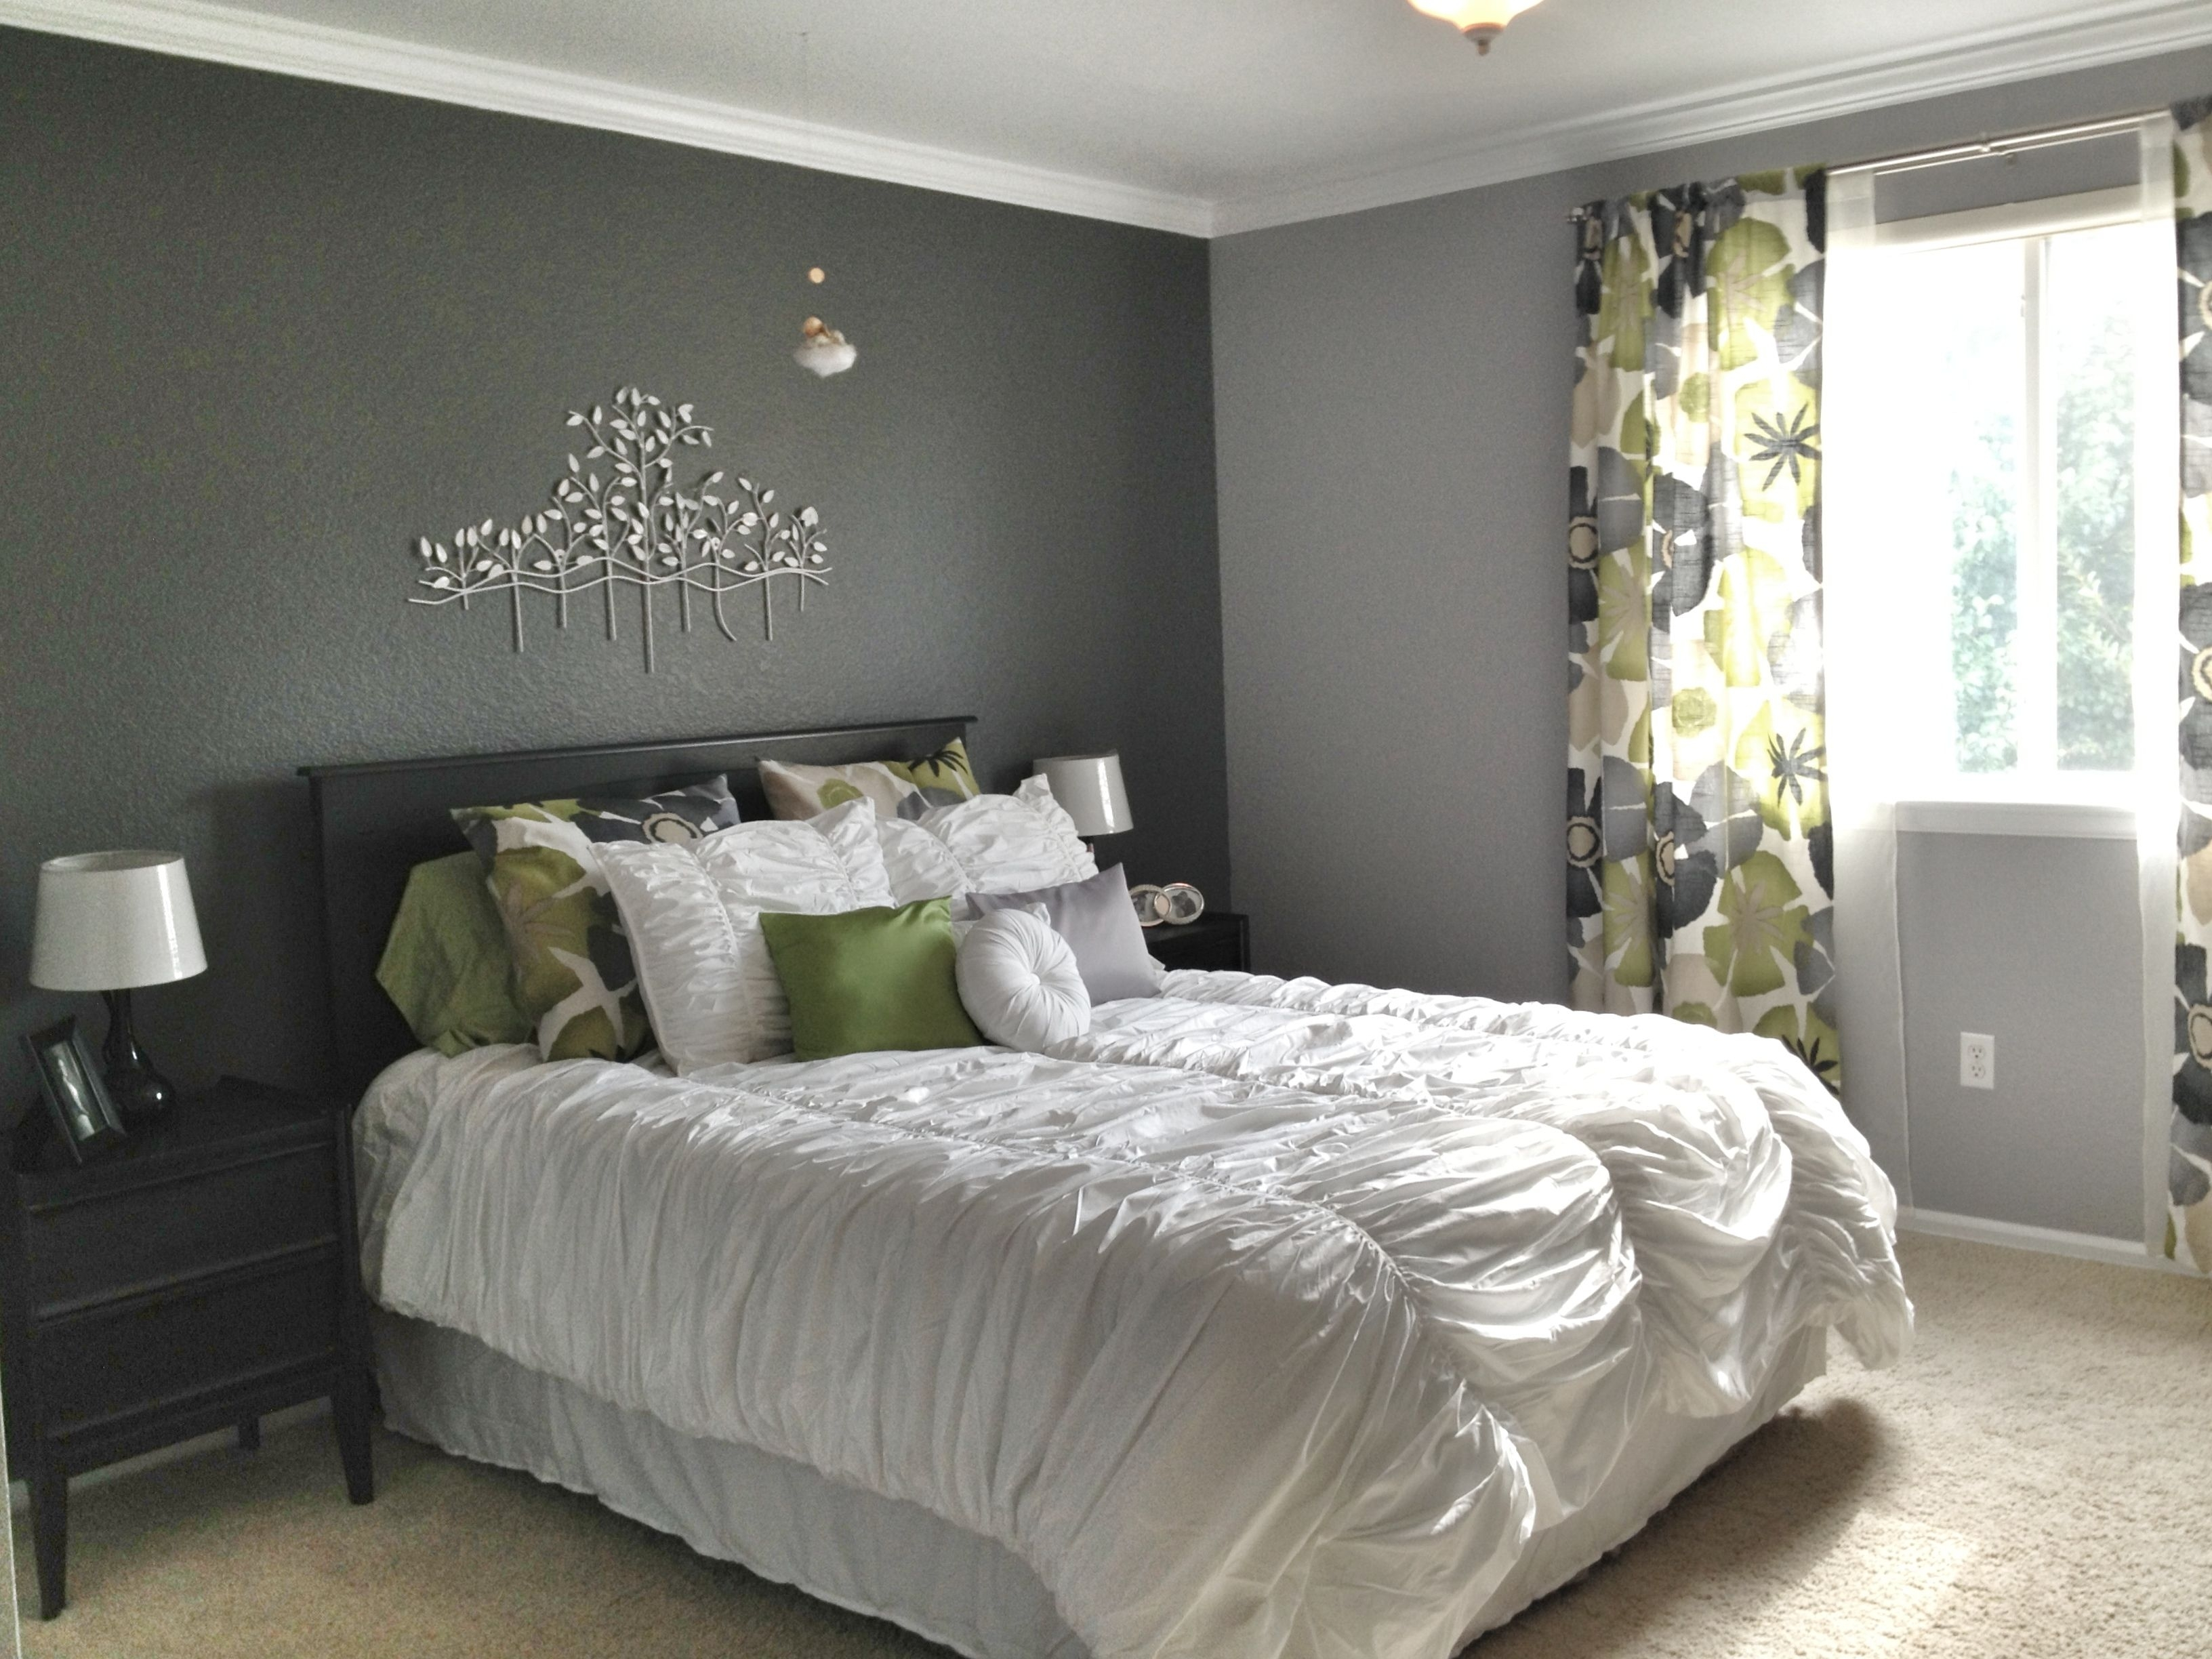 Grey Master Bedroom – Dark Accent Wall, Fun Patterned Curtains Inside Newest Grey And White Wall Accents (View 7 of 15)